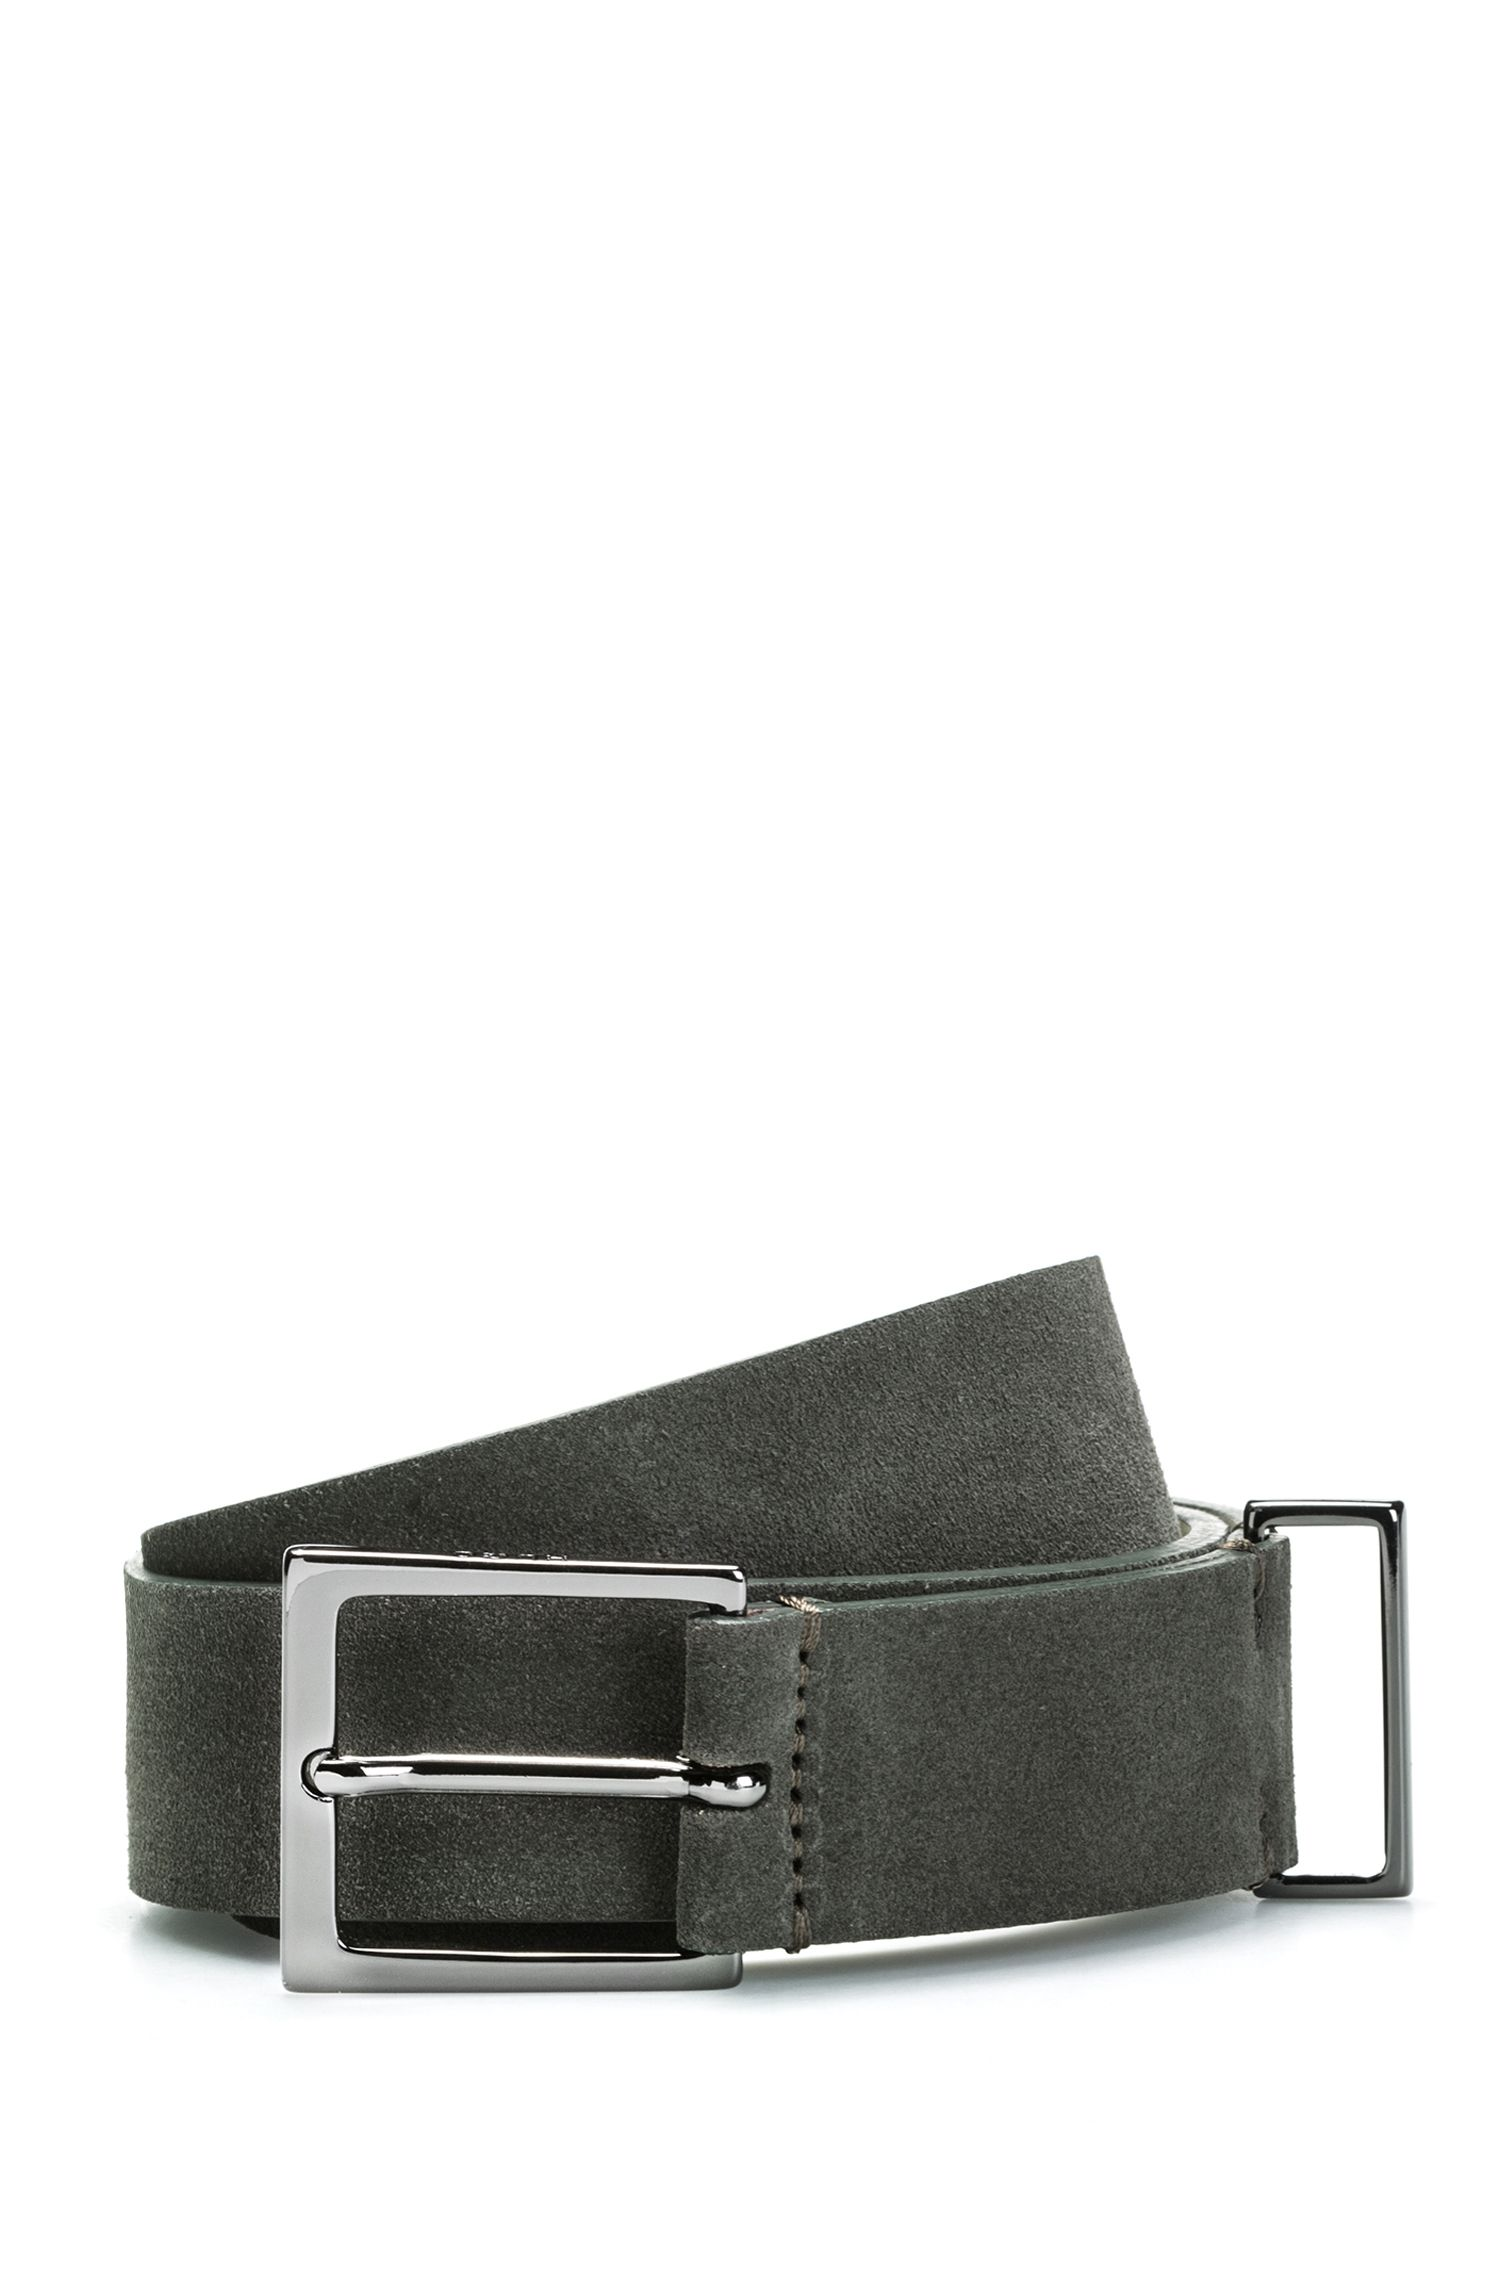 Suede leather belt with polished gunmetal hardware